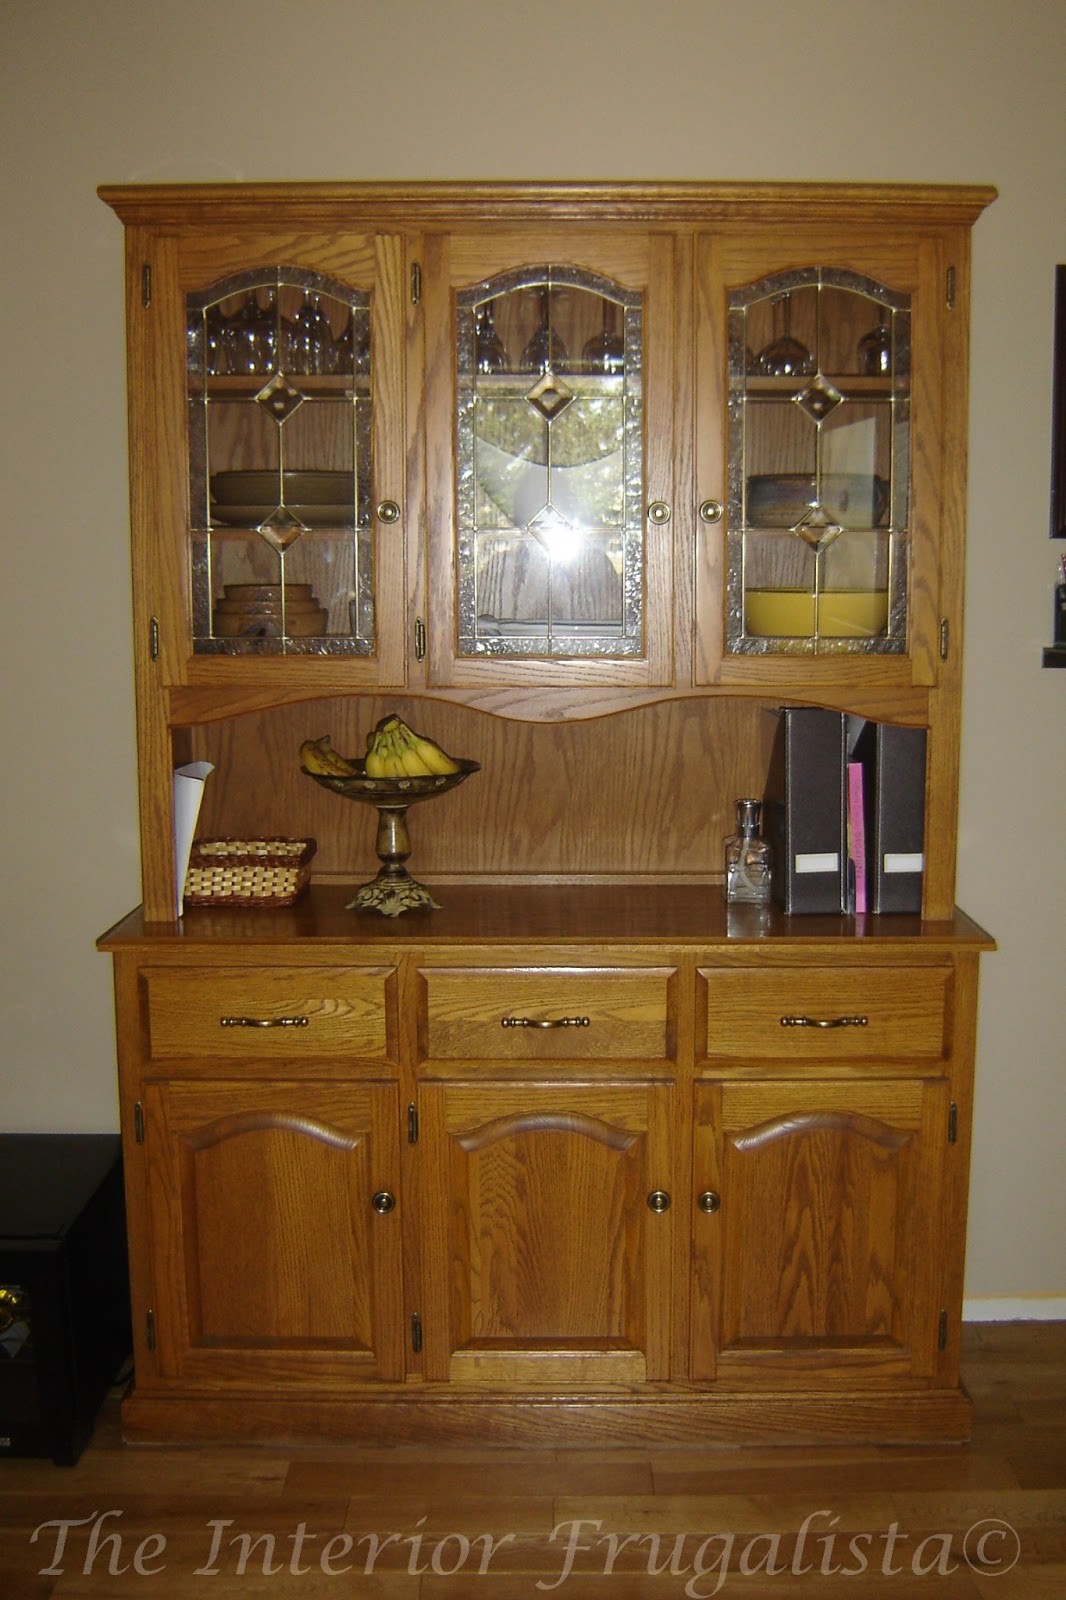 China Cabinet now Island & Pantry | The Interior Frugalista: China ...